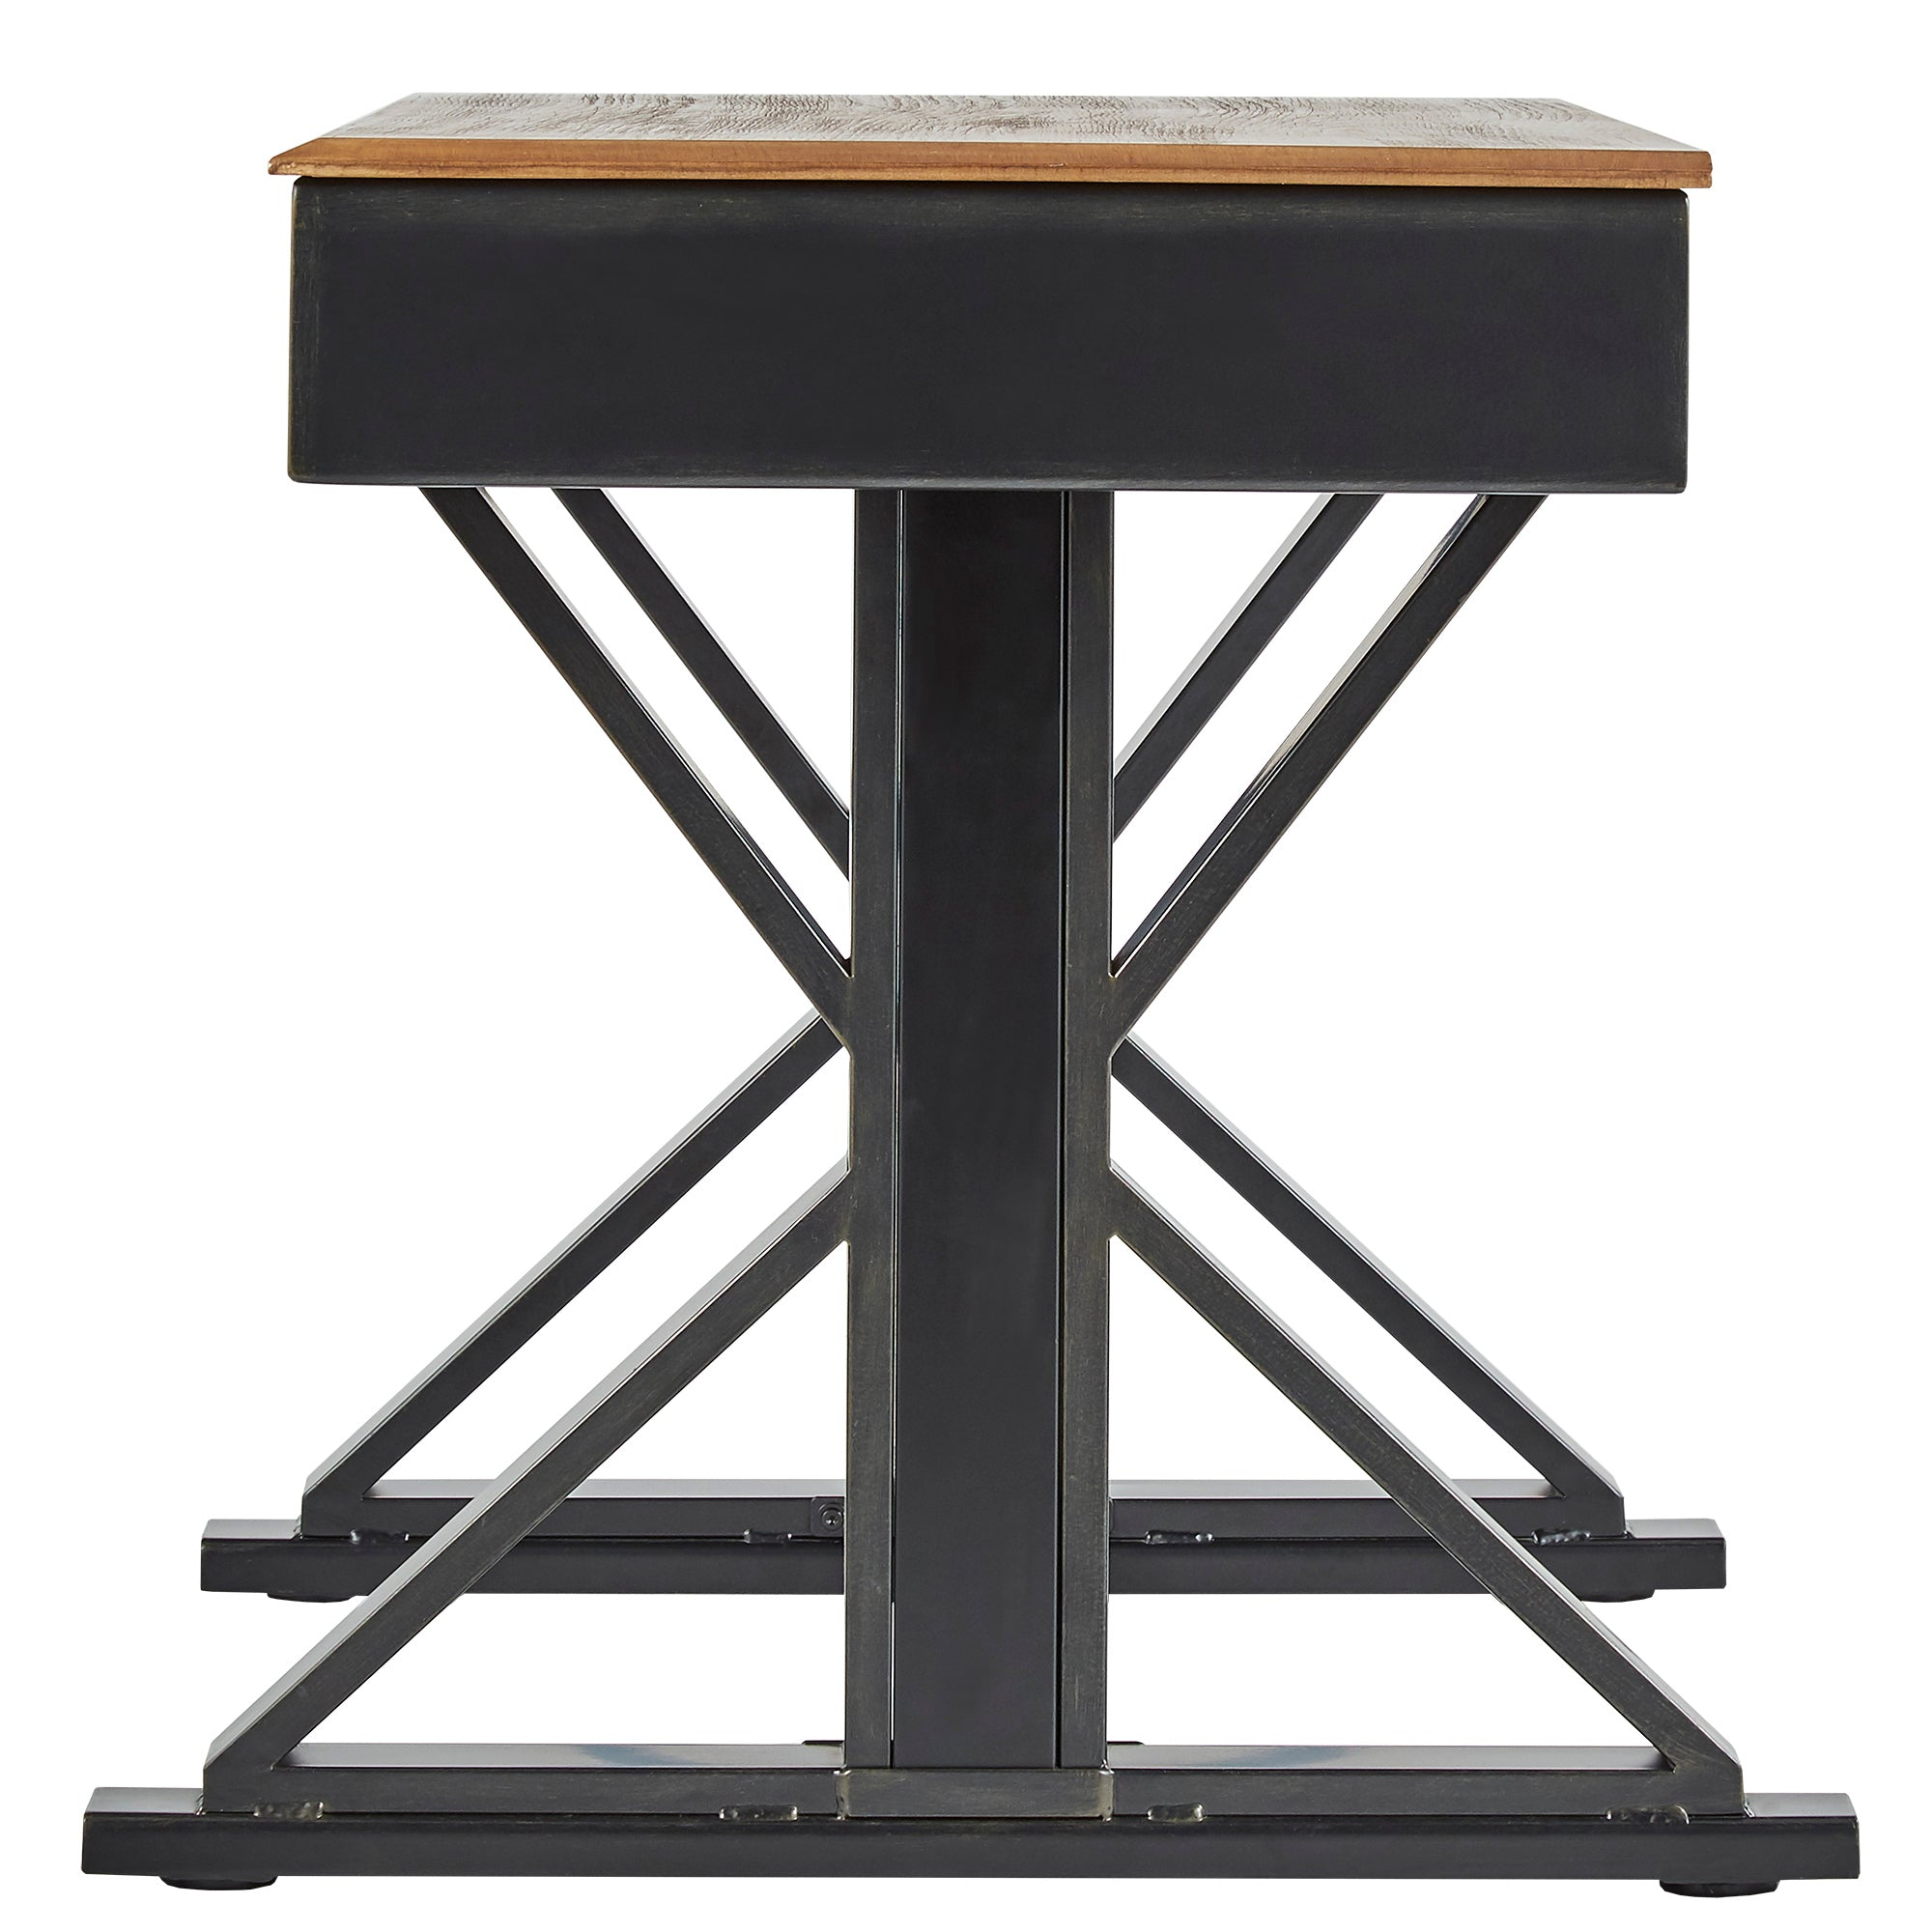 Adjustable Height X-Base Standing Desk - 47-inch